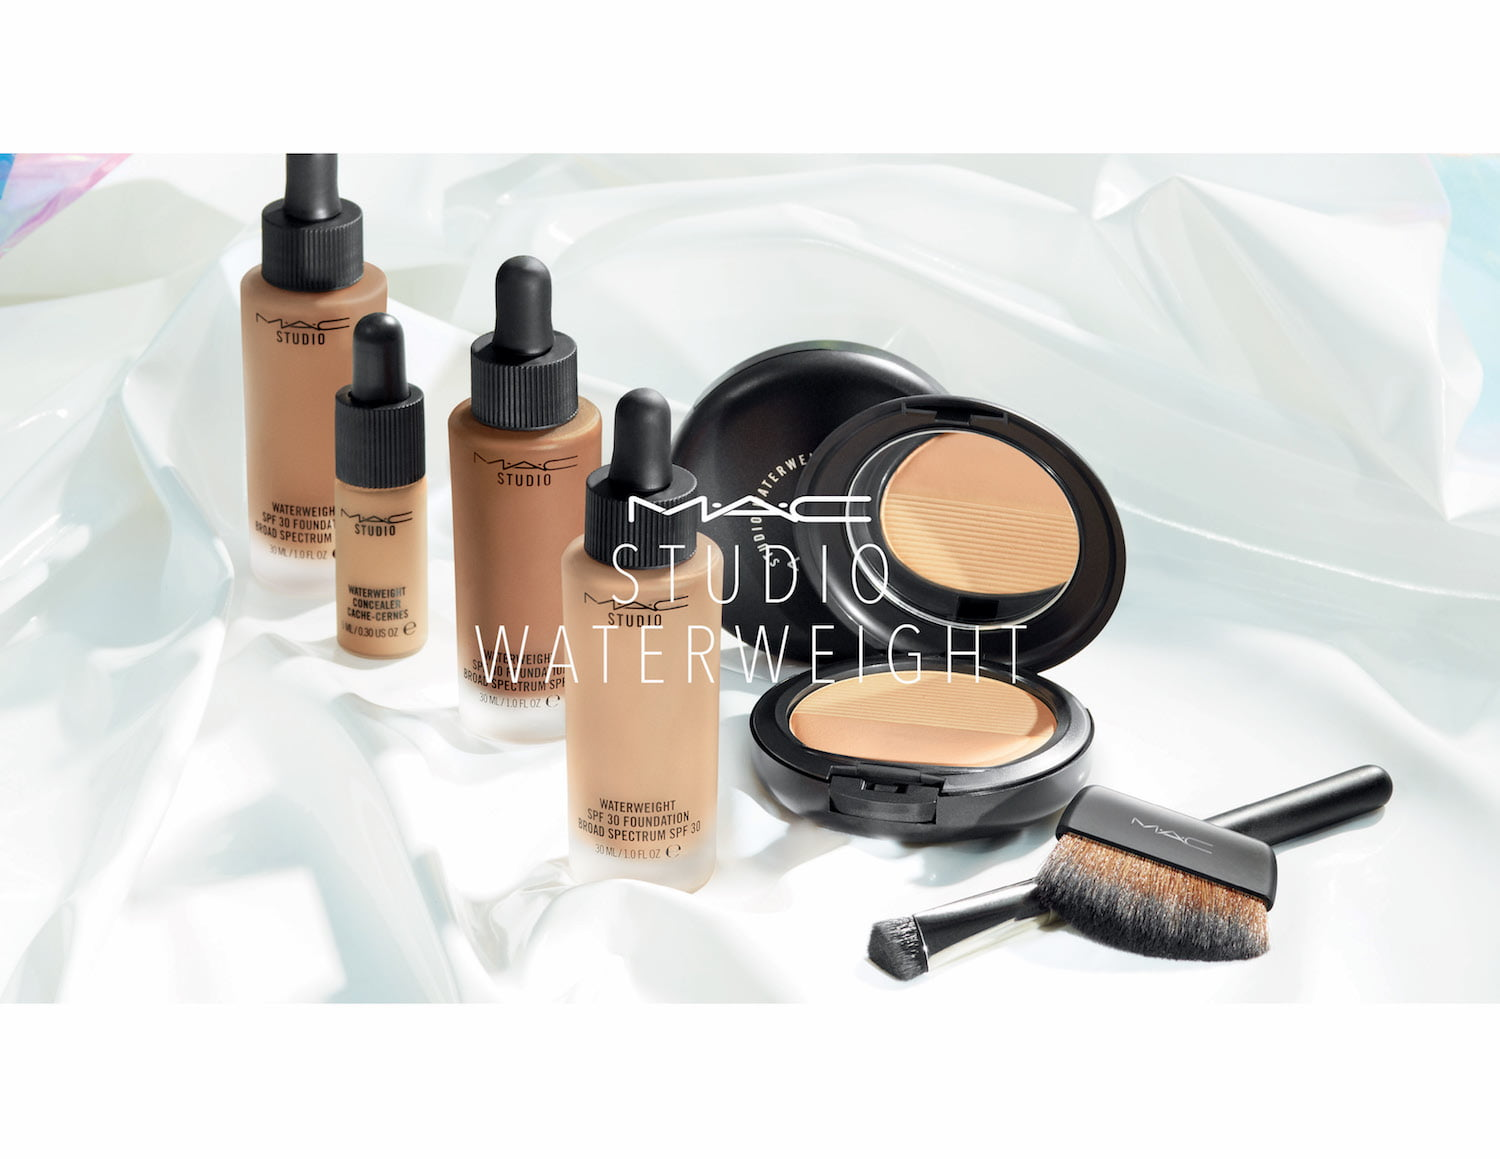 Studio Waterweight Concealer & Powder